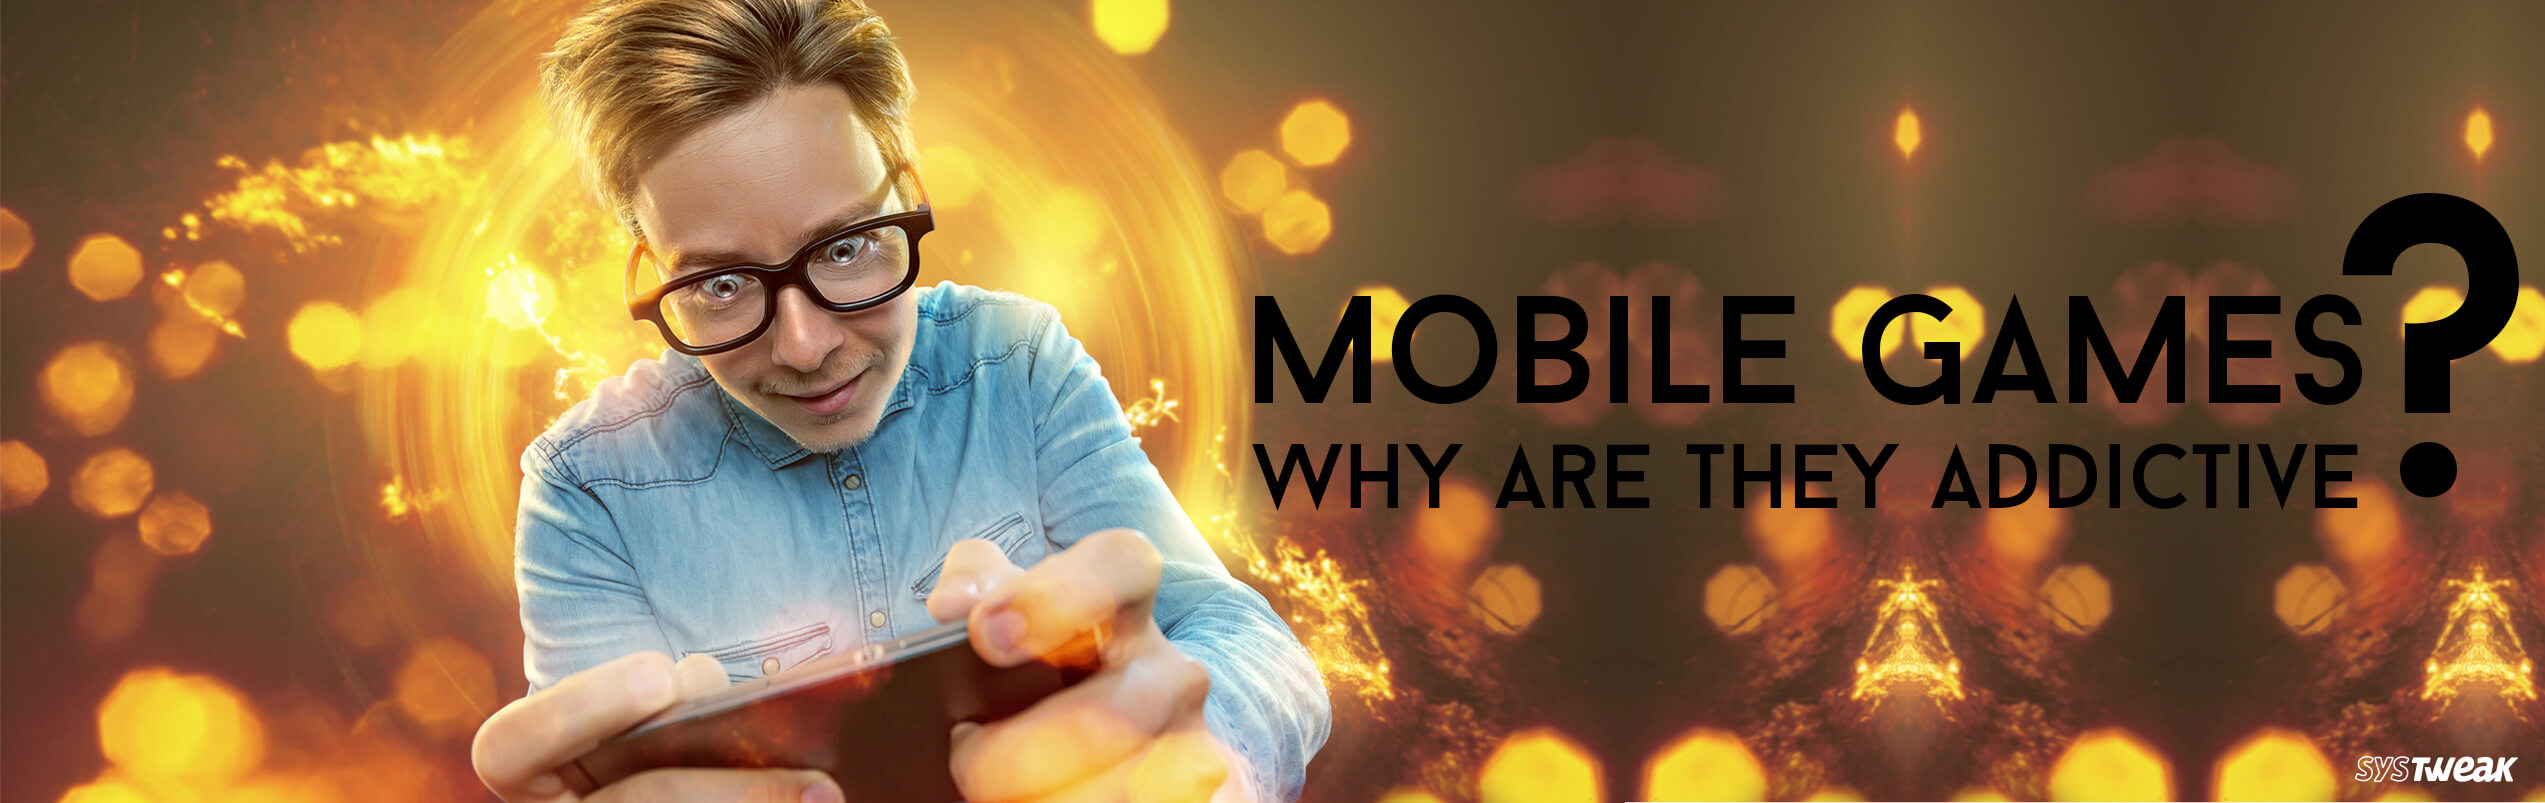 Mobile Game Addiction: Has It Affected You?